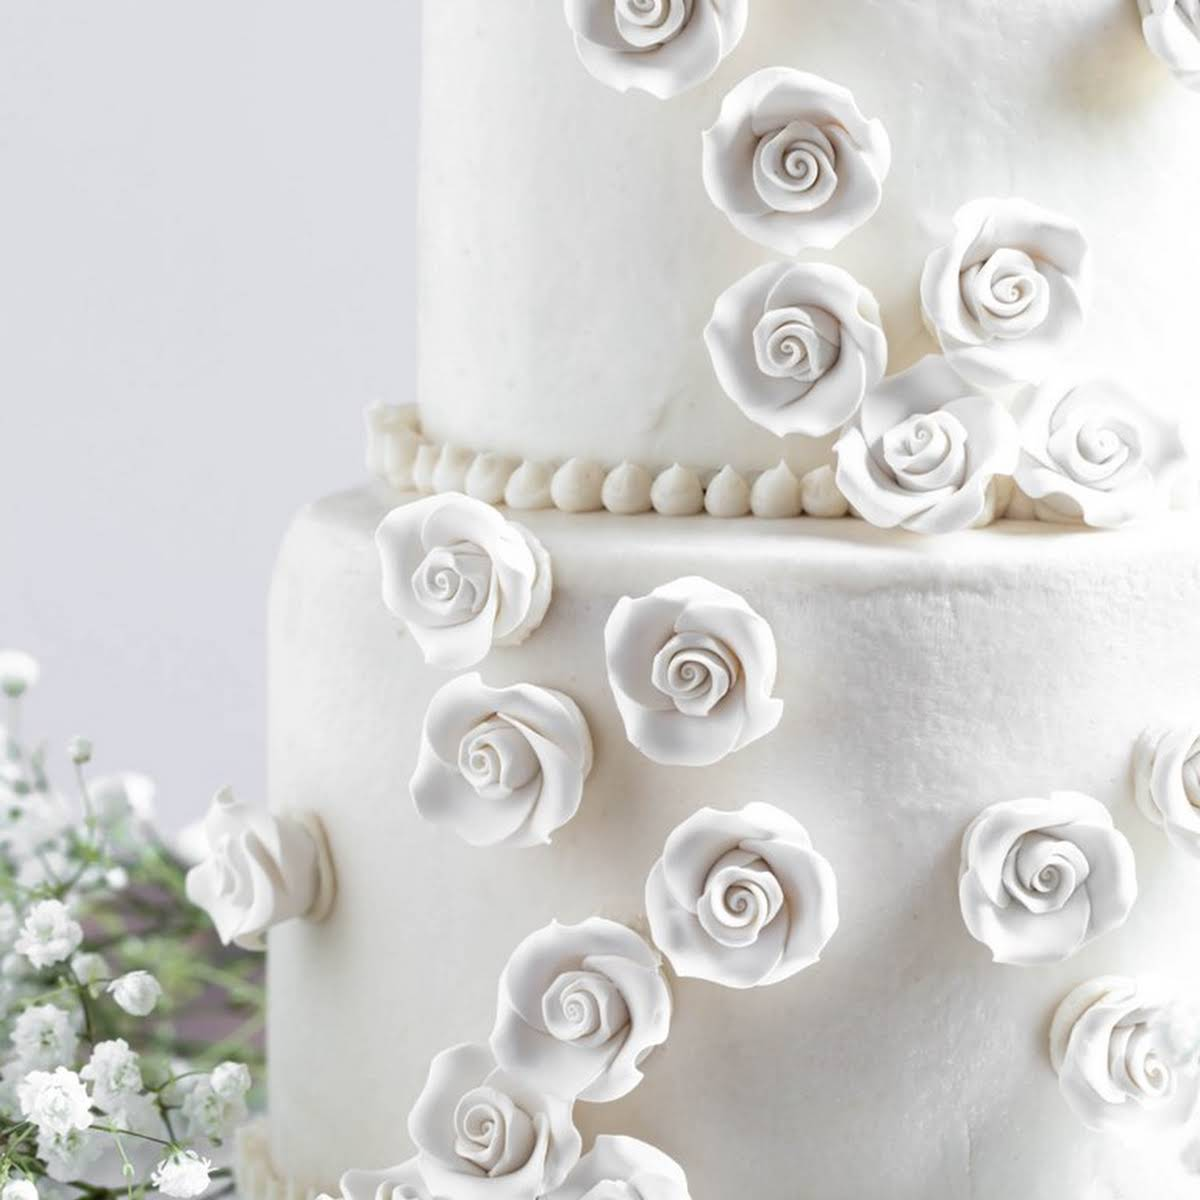 Hawaiian Wedding Cake With Whipped Cream Cream Cheese Frosting